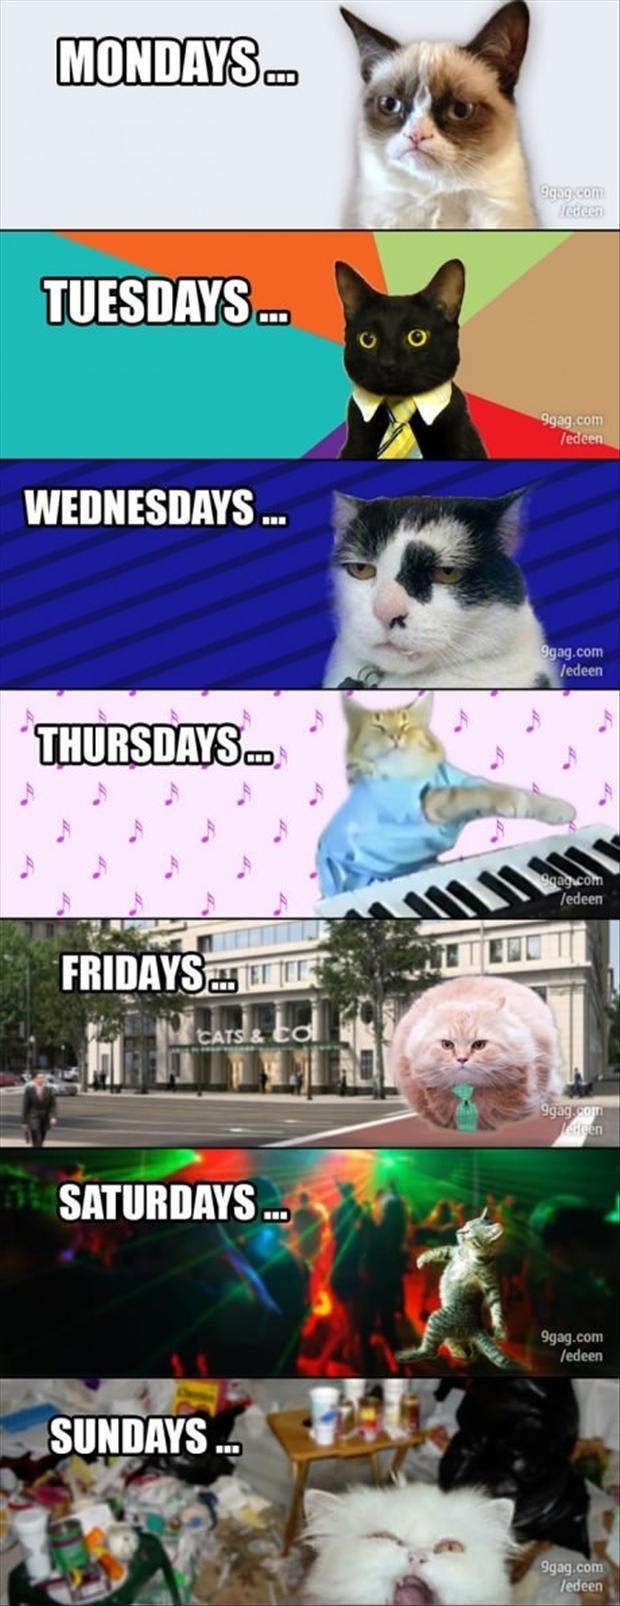 days of the week, according to cats, funny